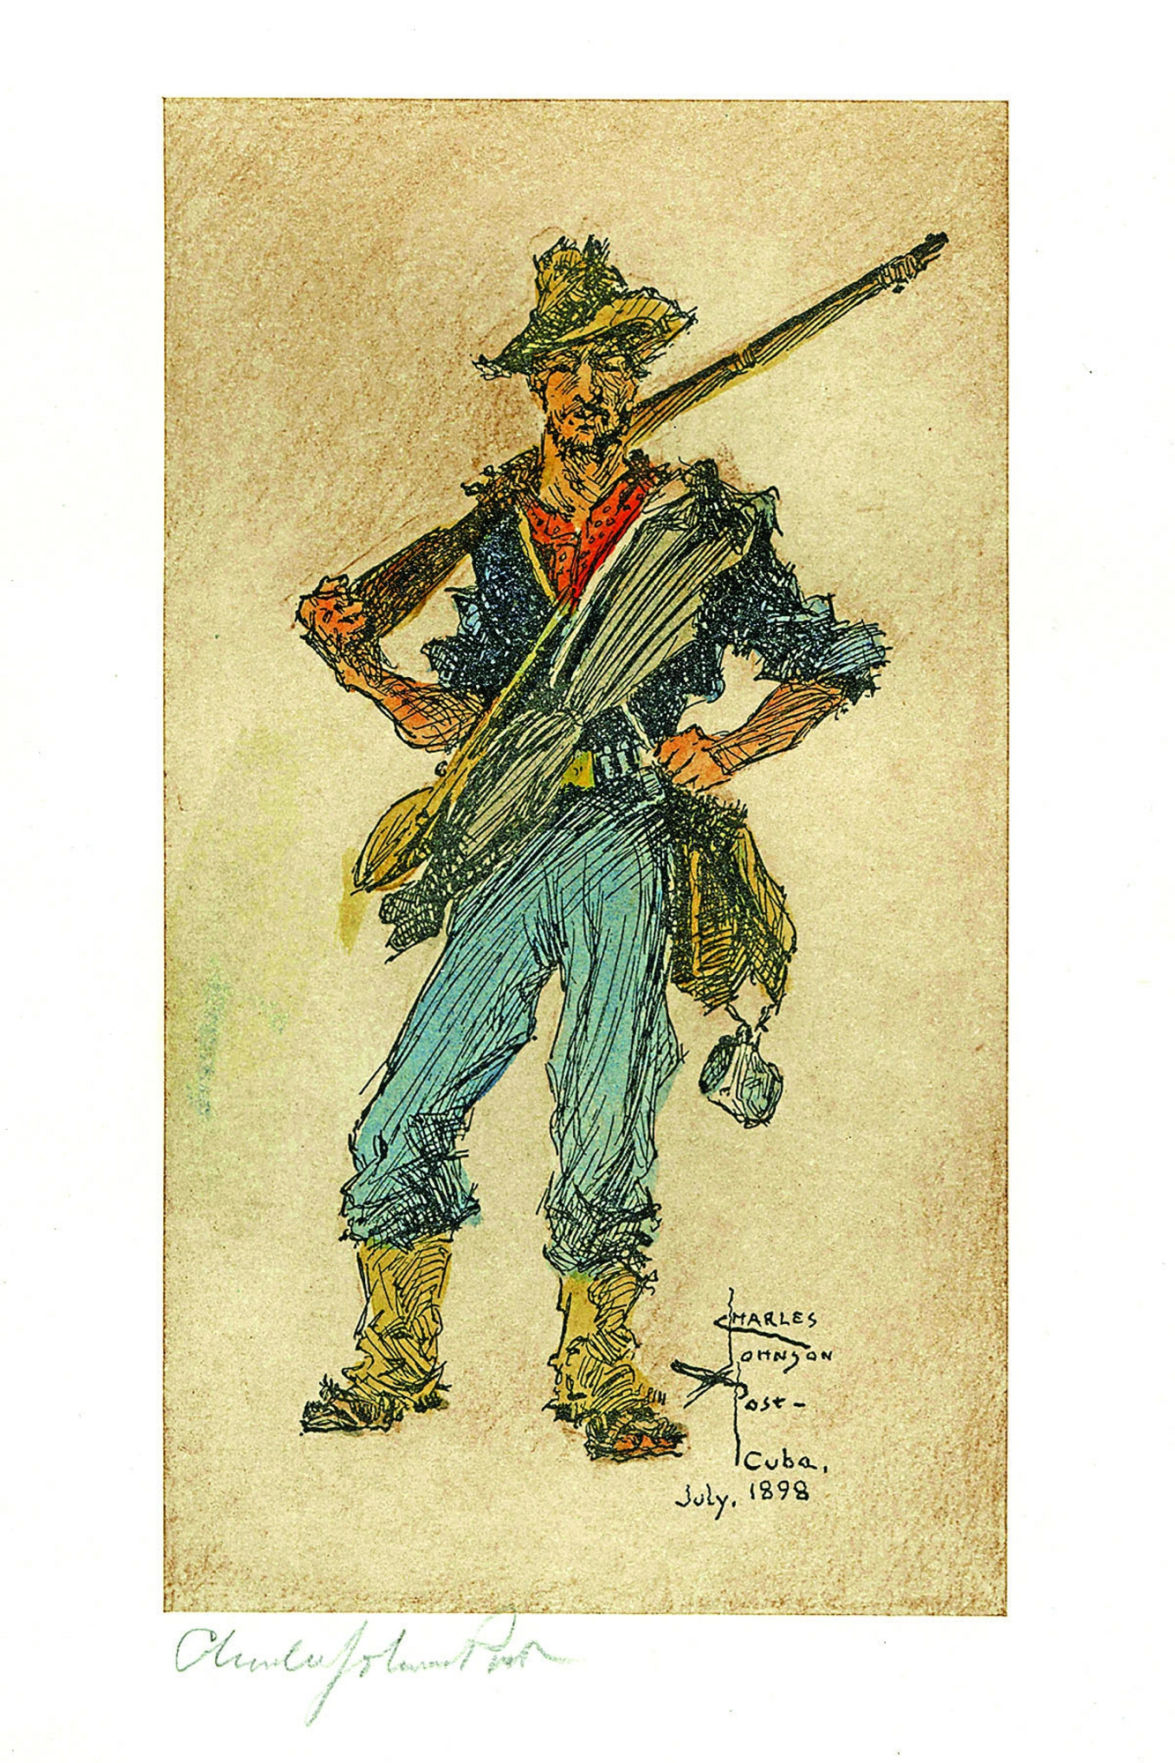 The Spanish American War Is The Subject Of A Free Talk At